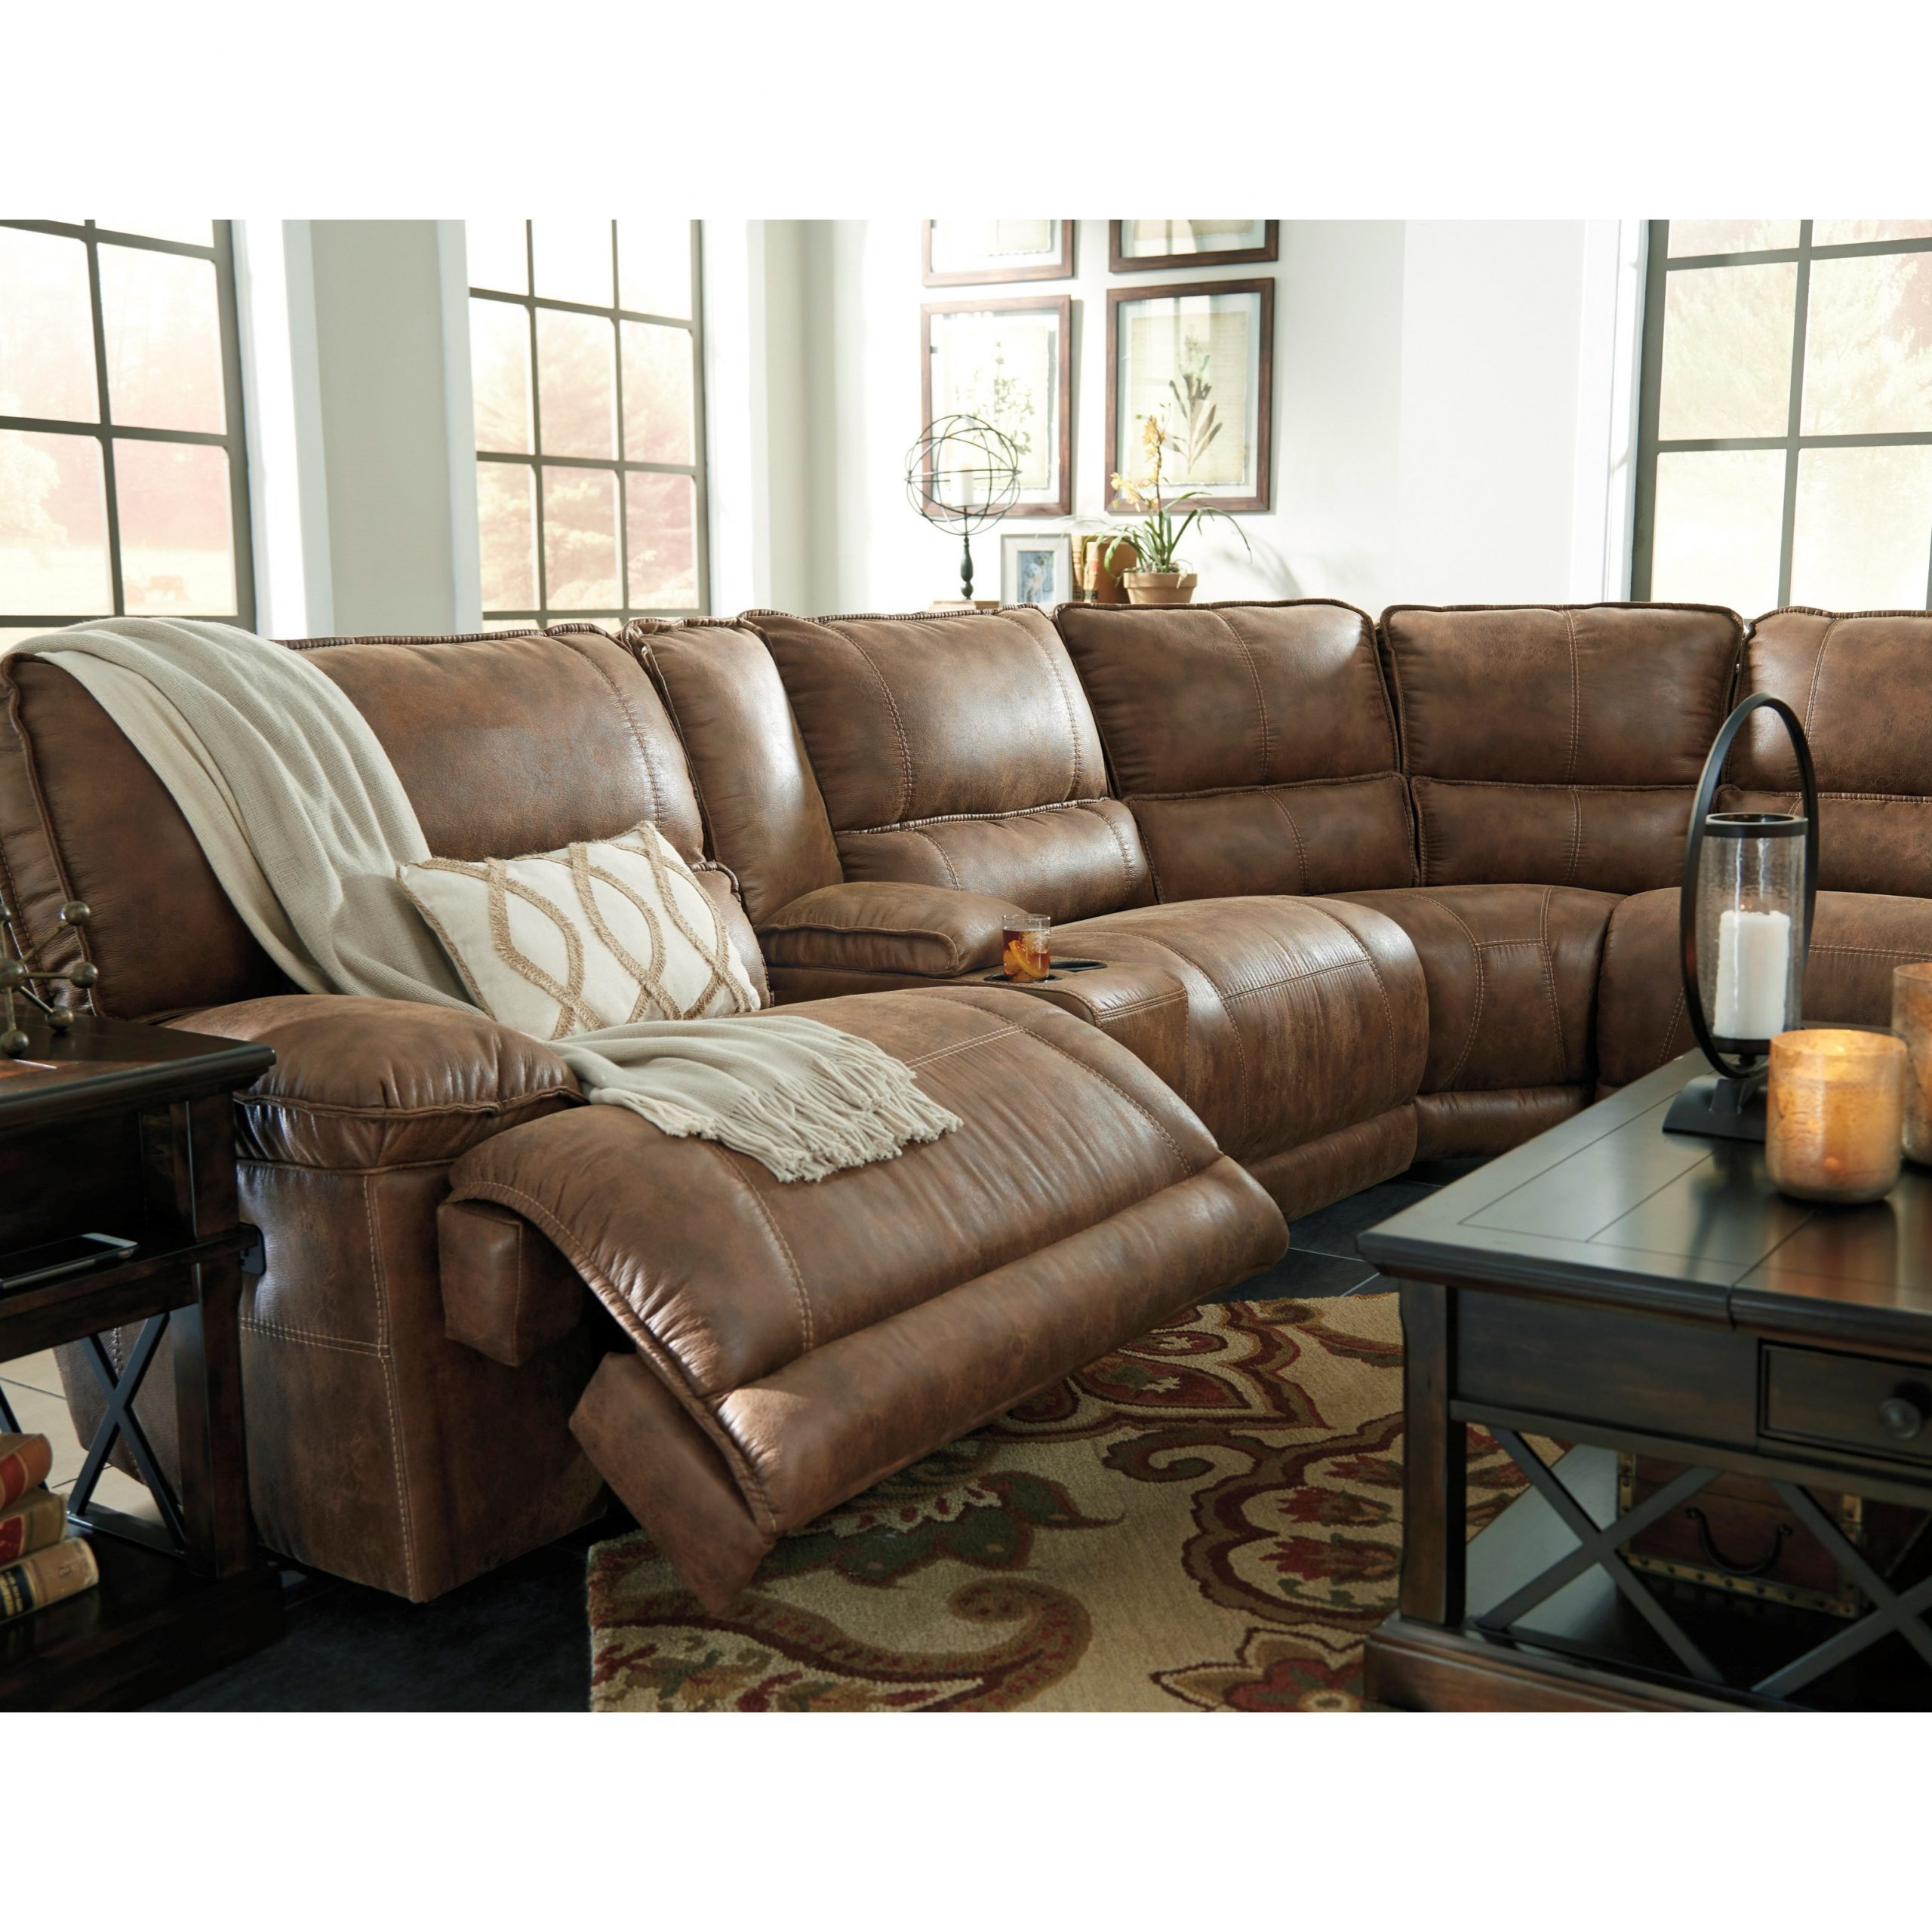 Raven Power Reclining Sofas For Most Up To Date Signature Designashley Grattis 6 Piece Power Reclining (View 1 of 20)